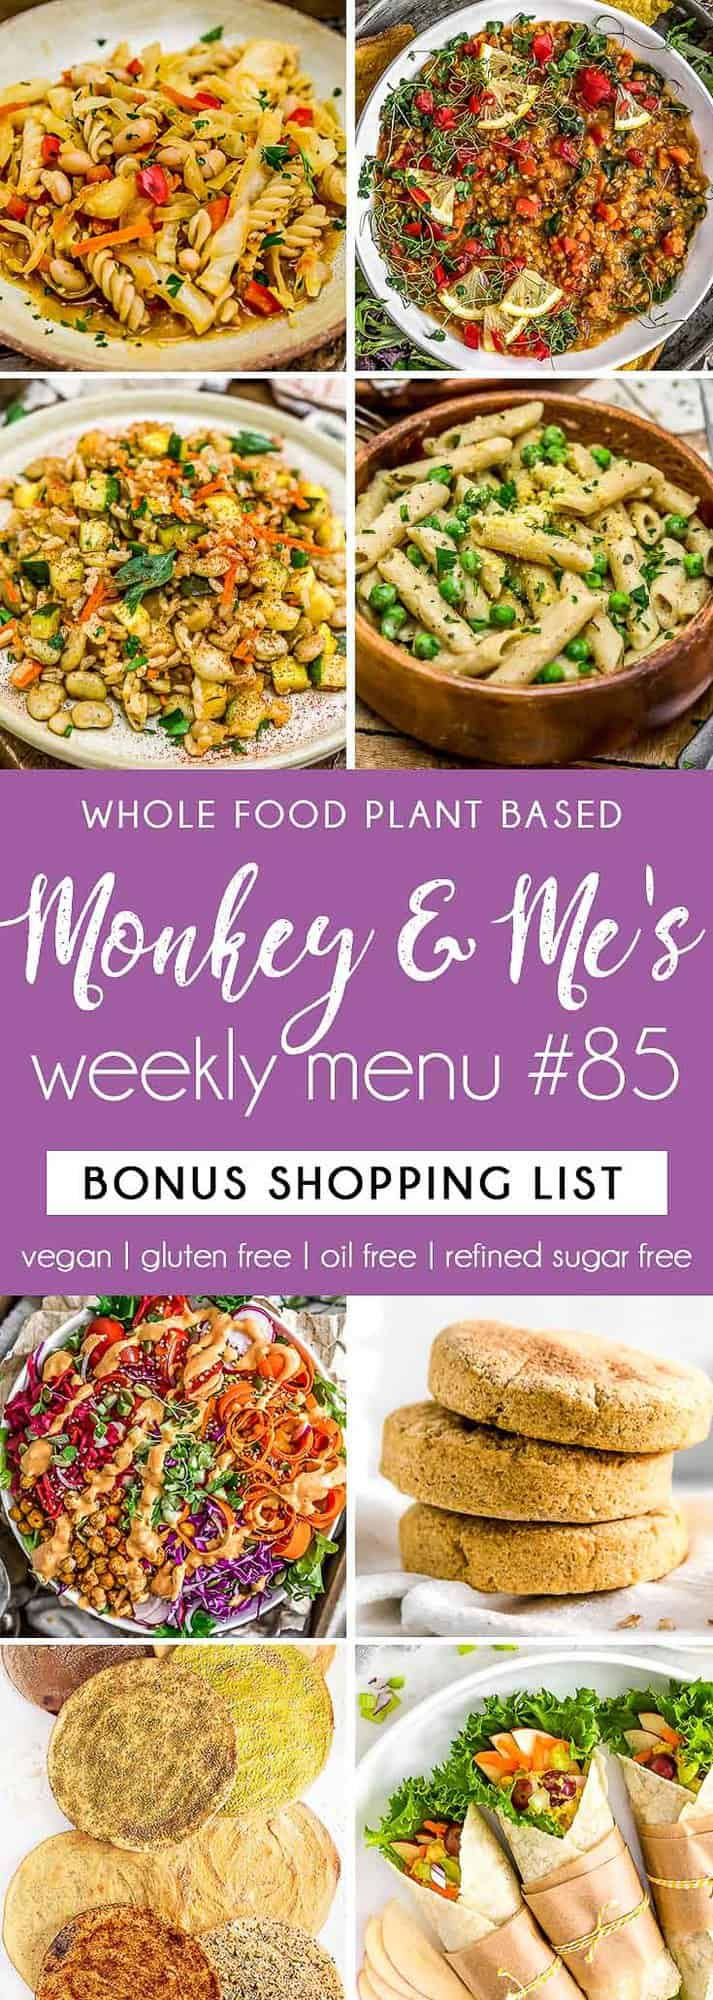 Monkey and Me's Menu 85 featuring 8 recipes